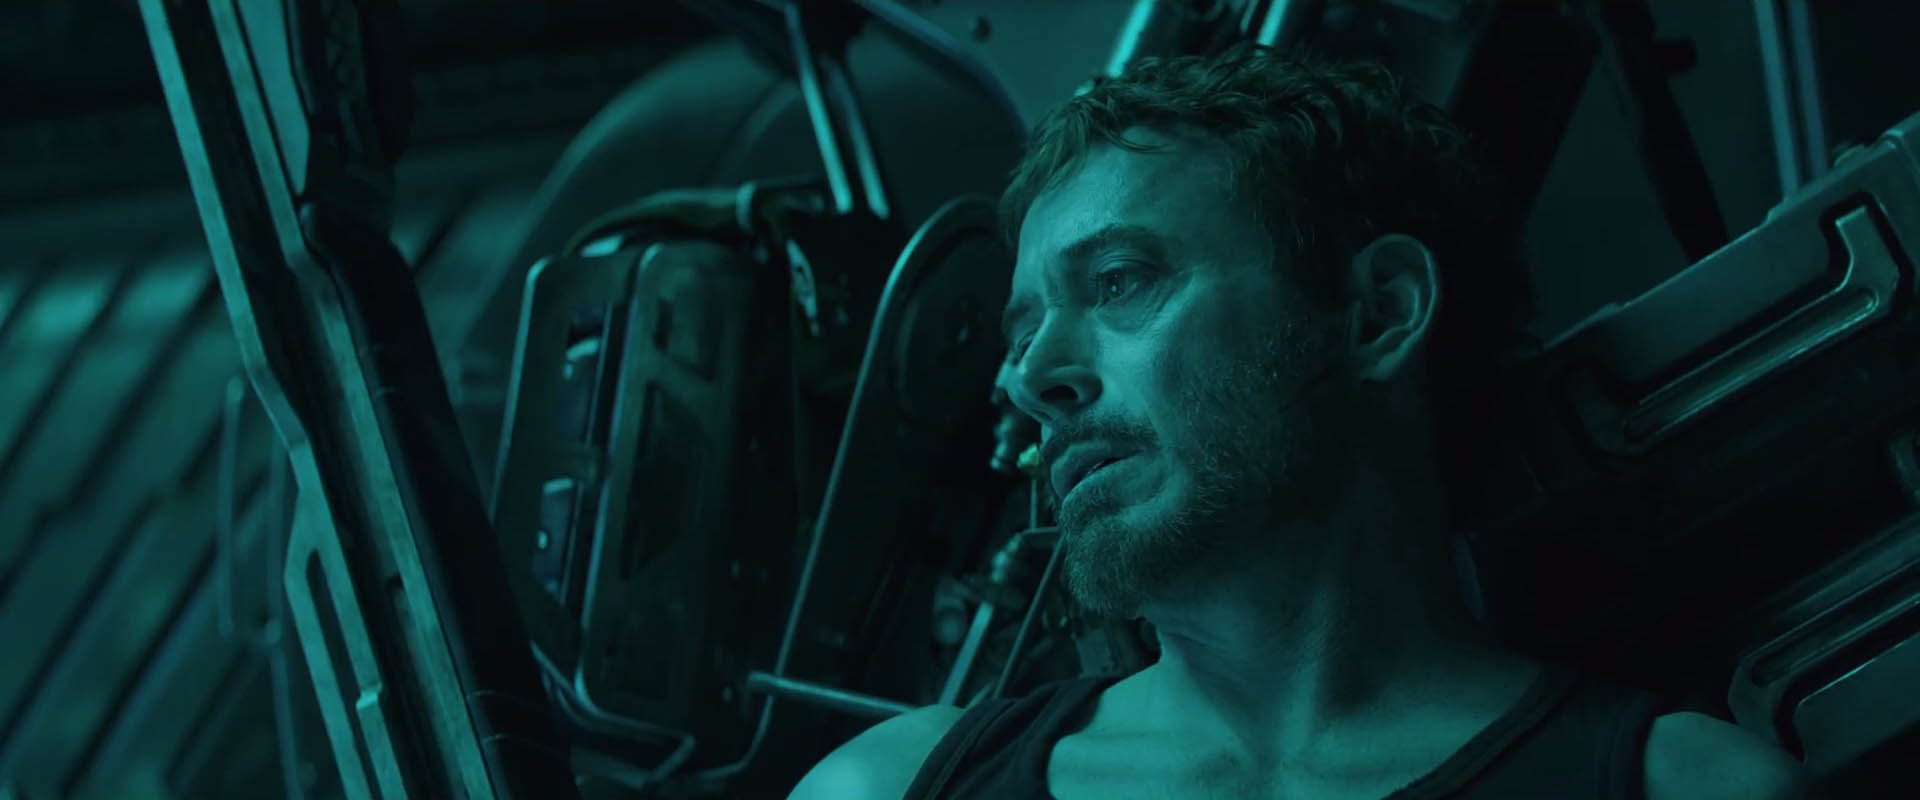 Fast And Furious 3 Full Movie >> Most Anticipated Movies of 2019: Avengers: Endgame